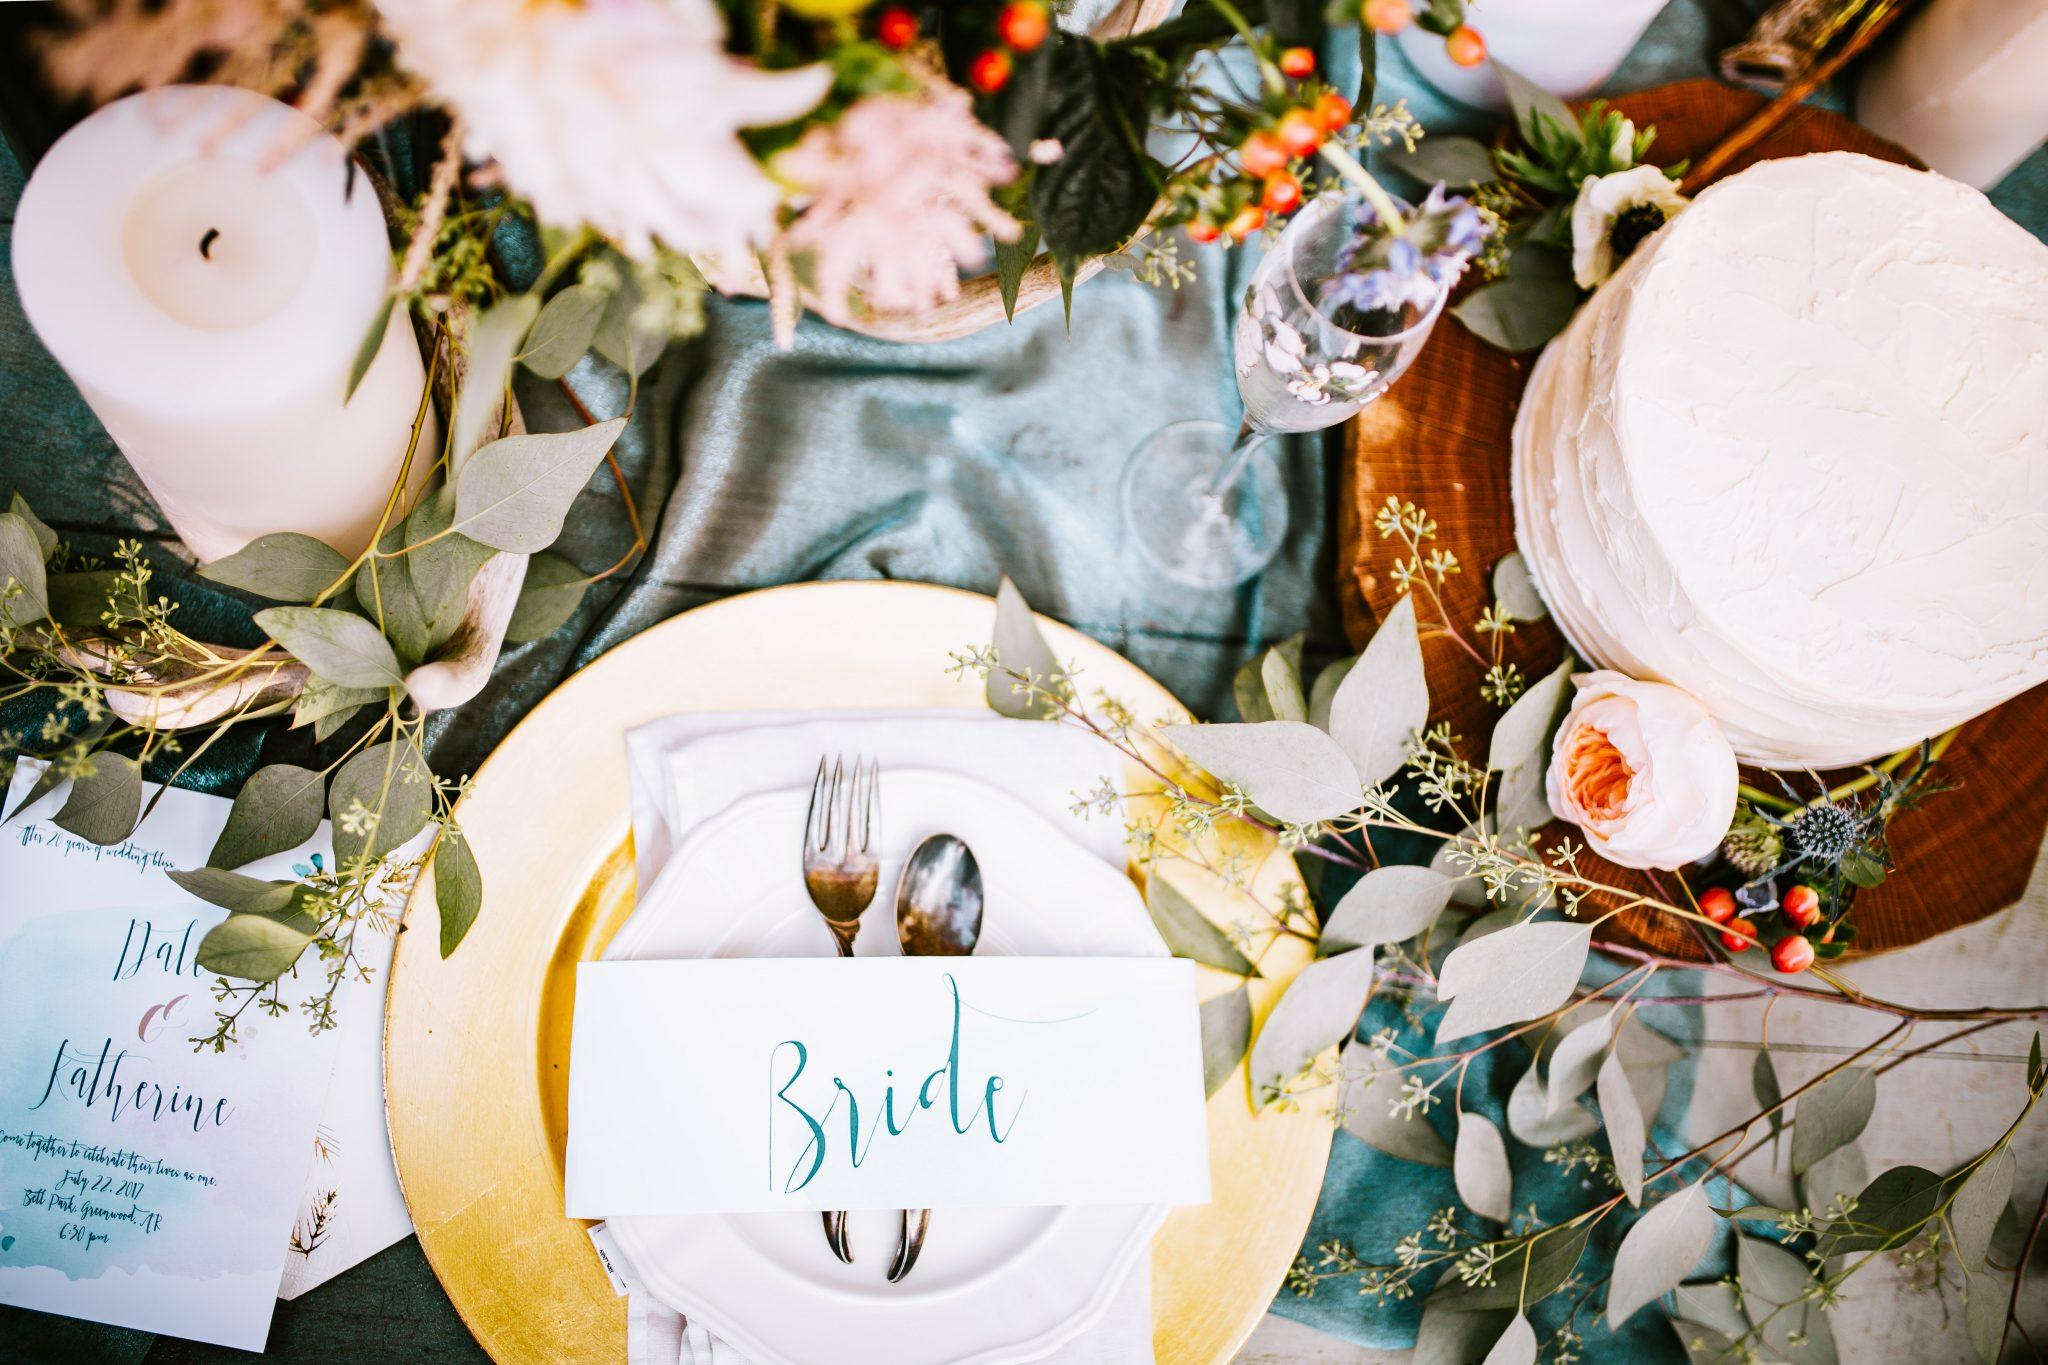 Wedding Menu Trends 2019 - Bradbourne House Kent